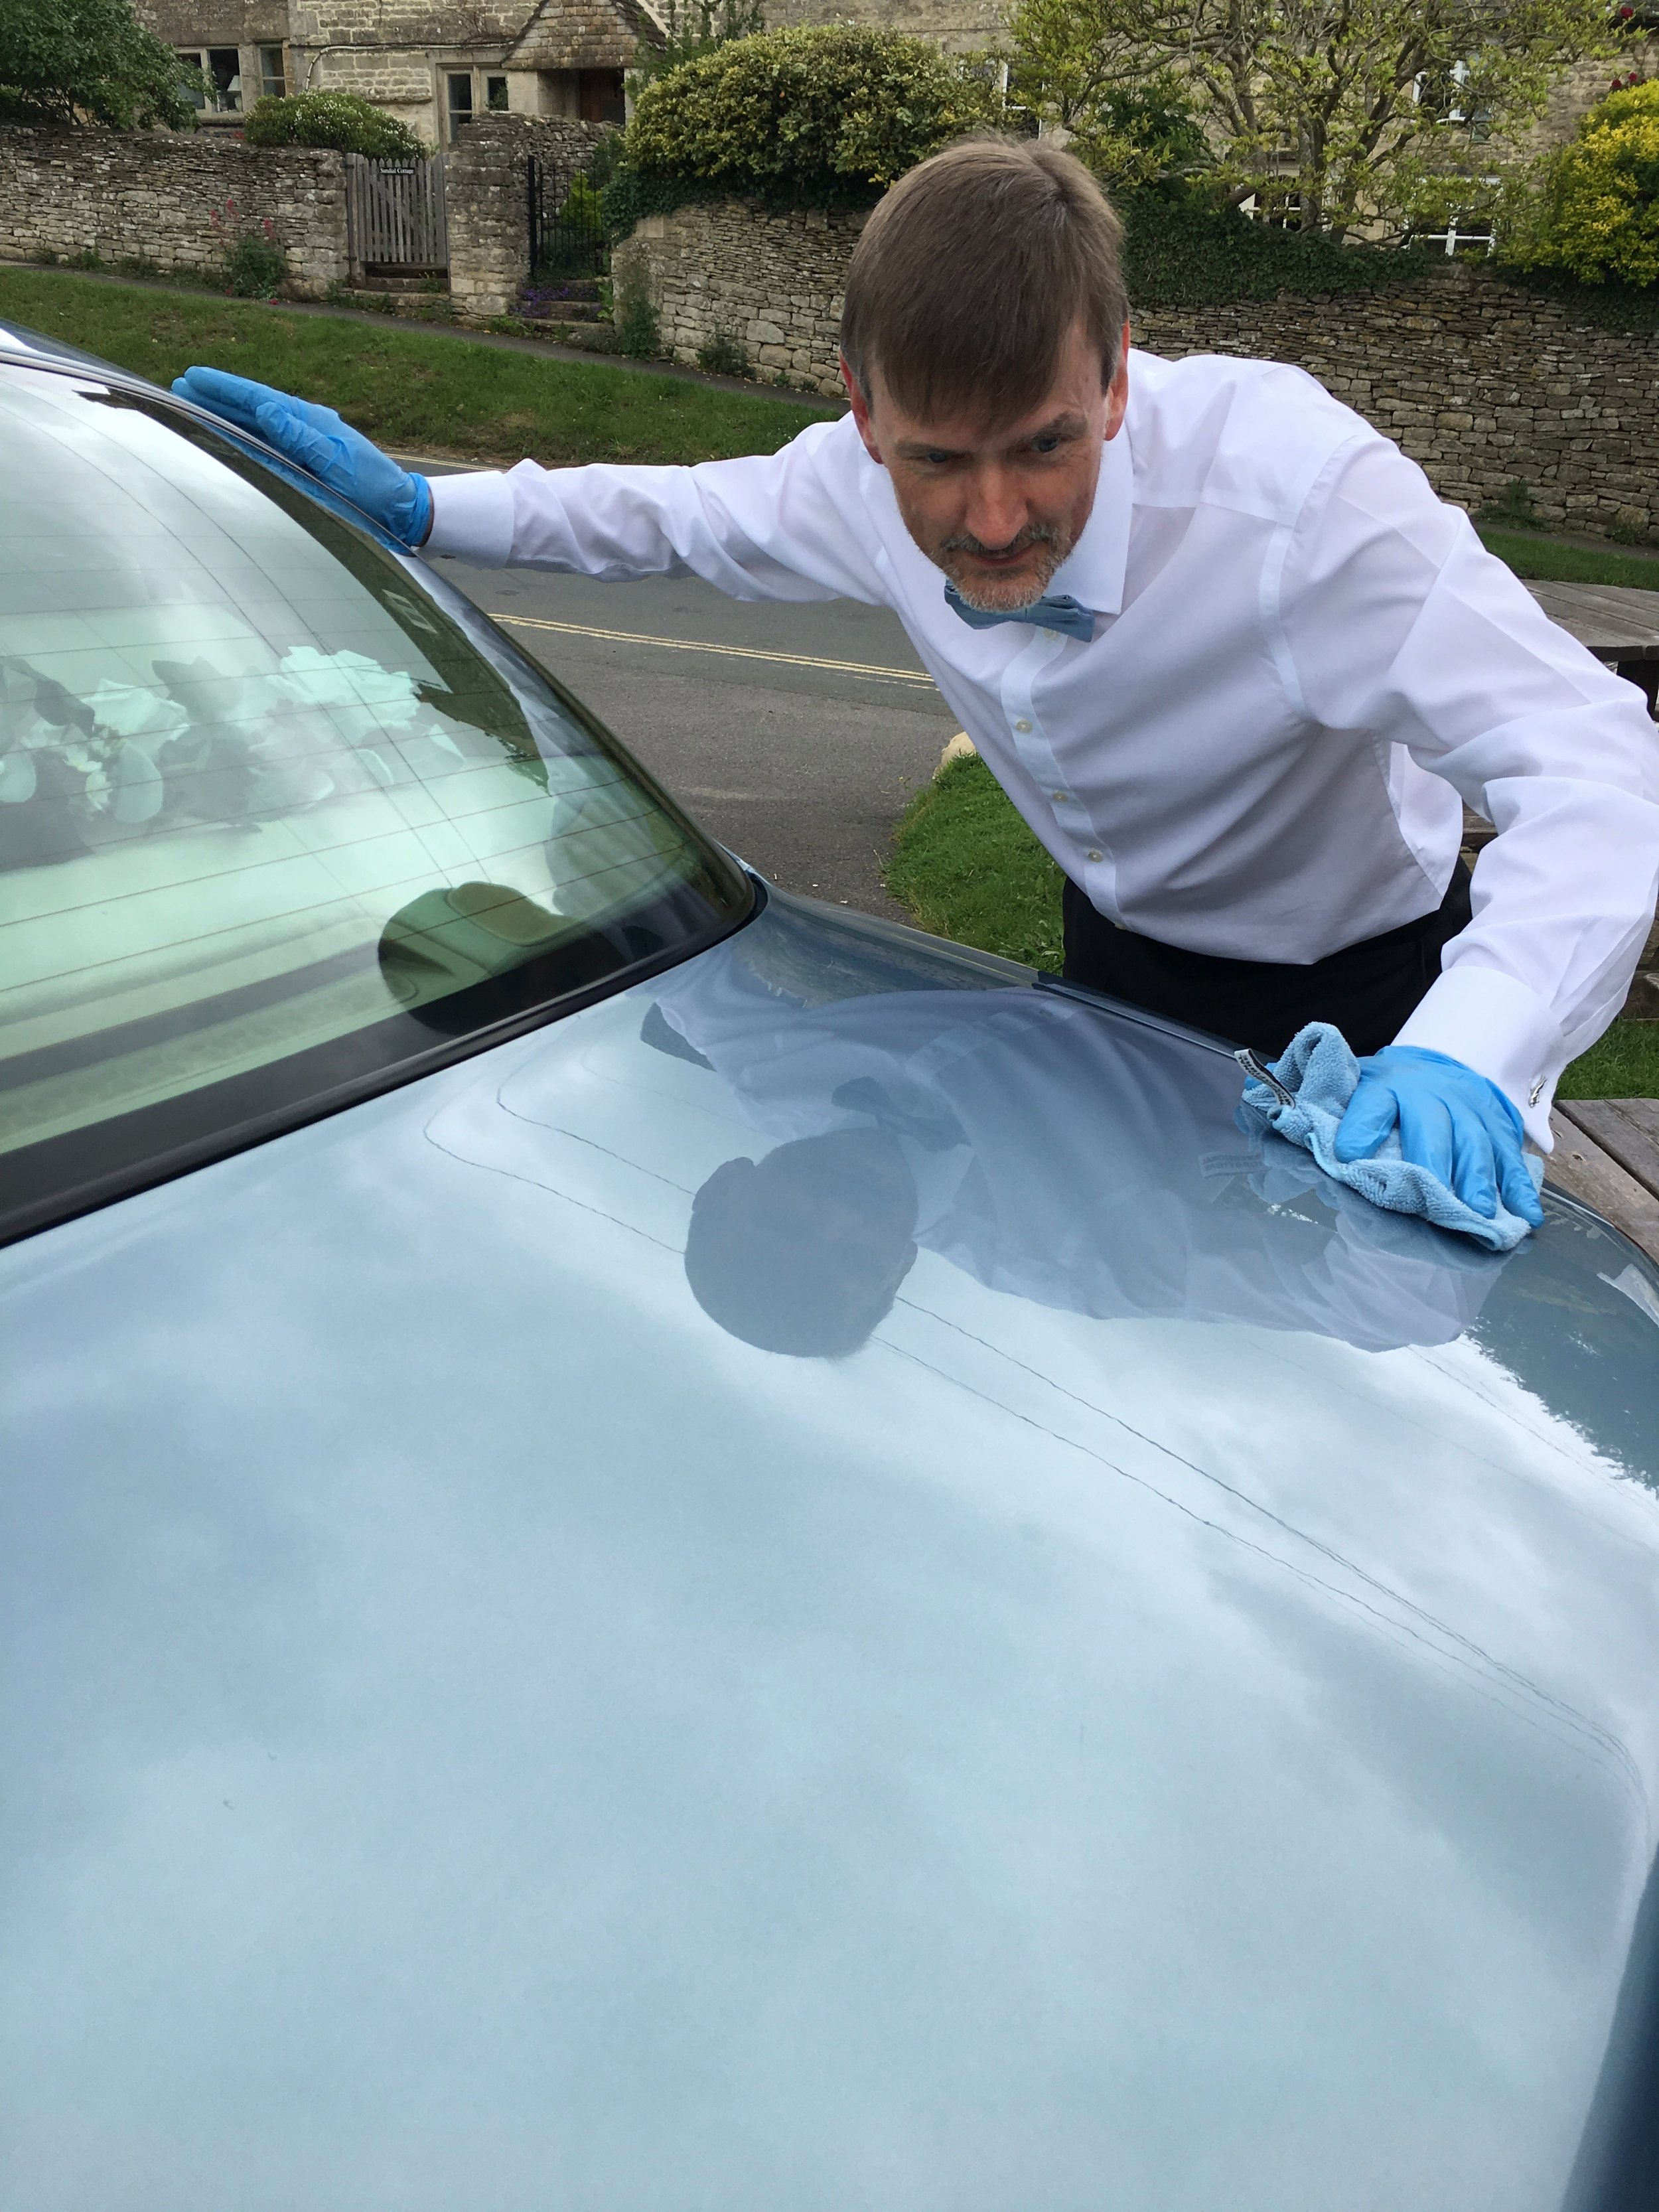 Detailing wax at a 'pre-location' before a wedding